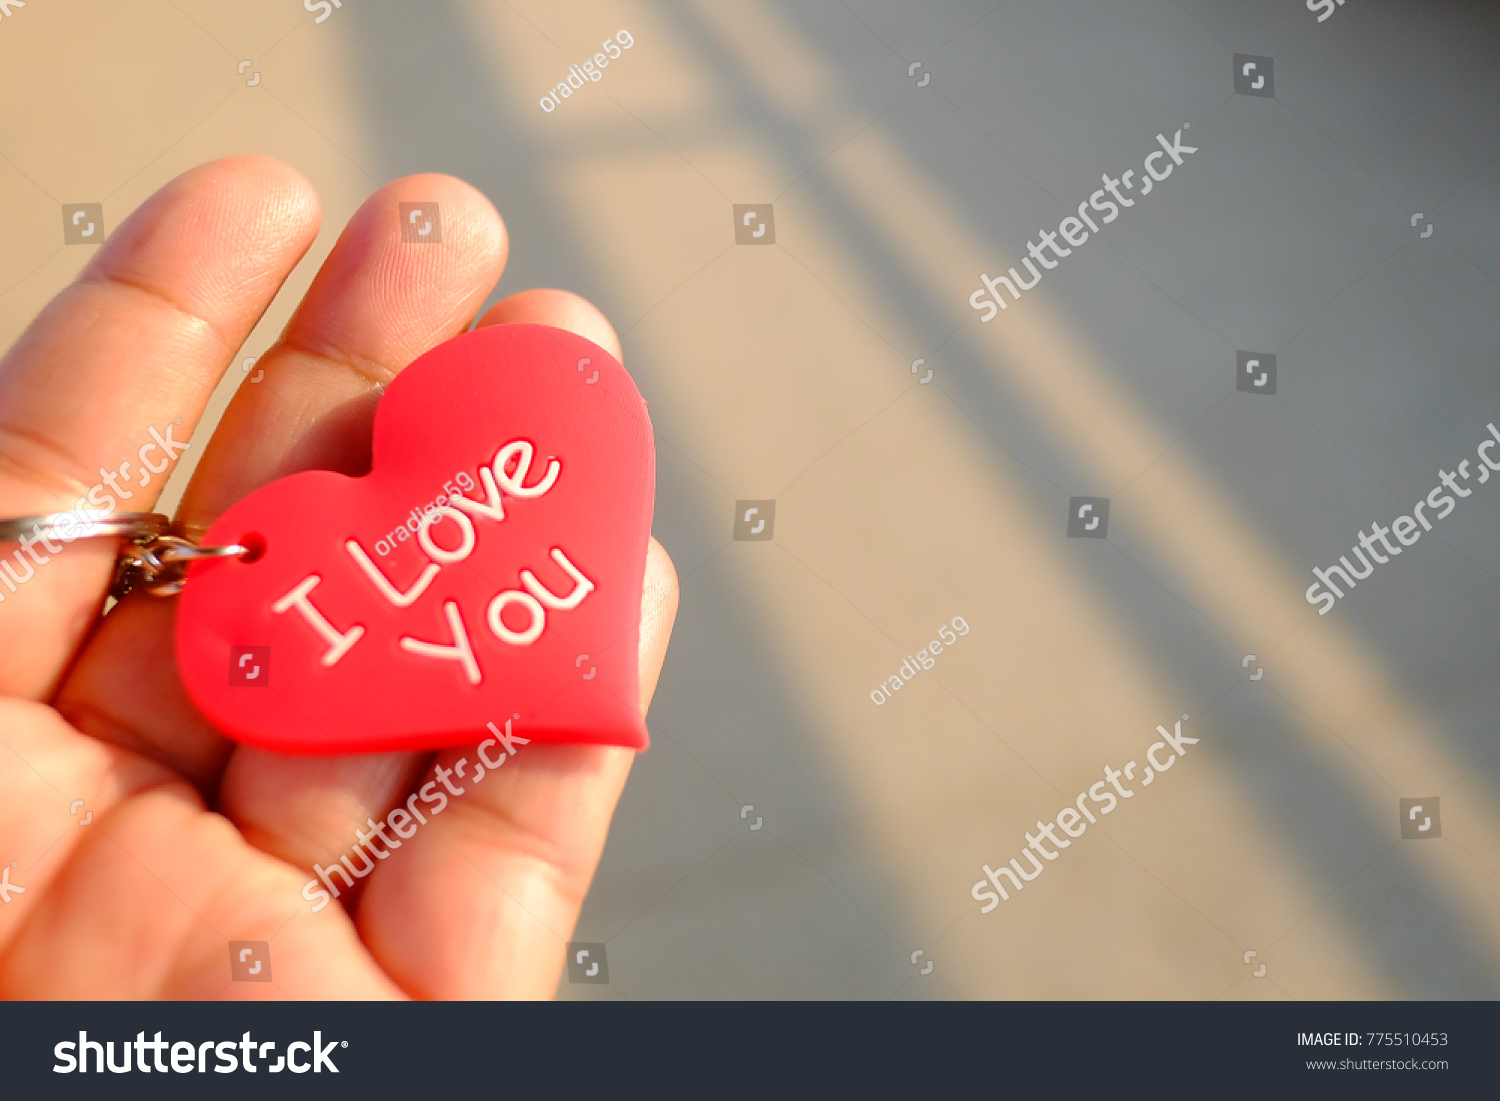 Red Heart Symbol Key Chain On Stock Photo Royalty Free 775510453